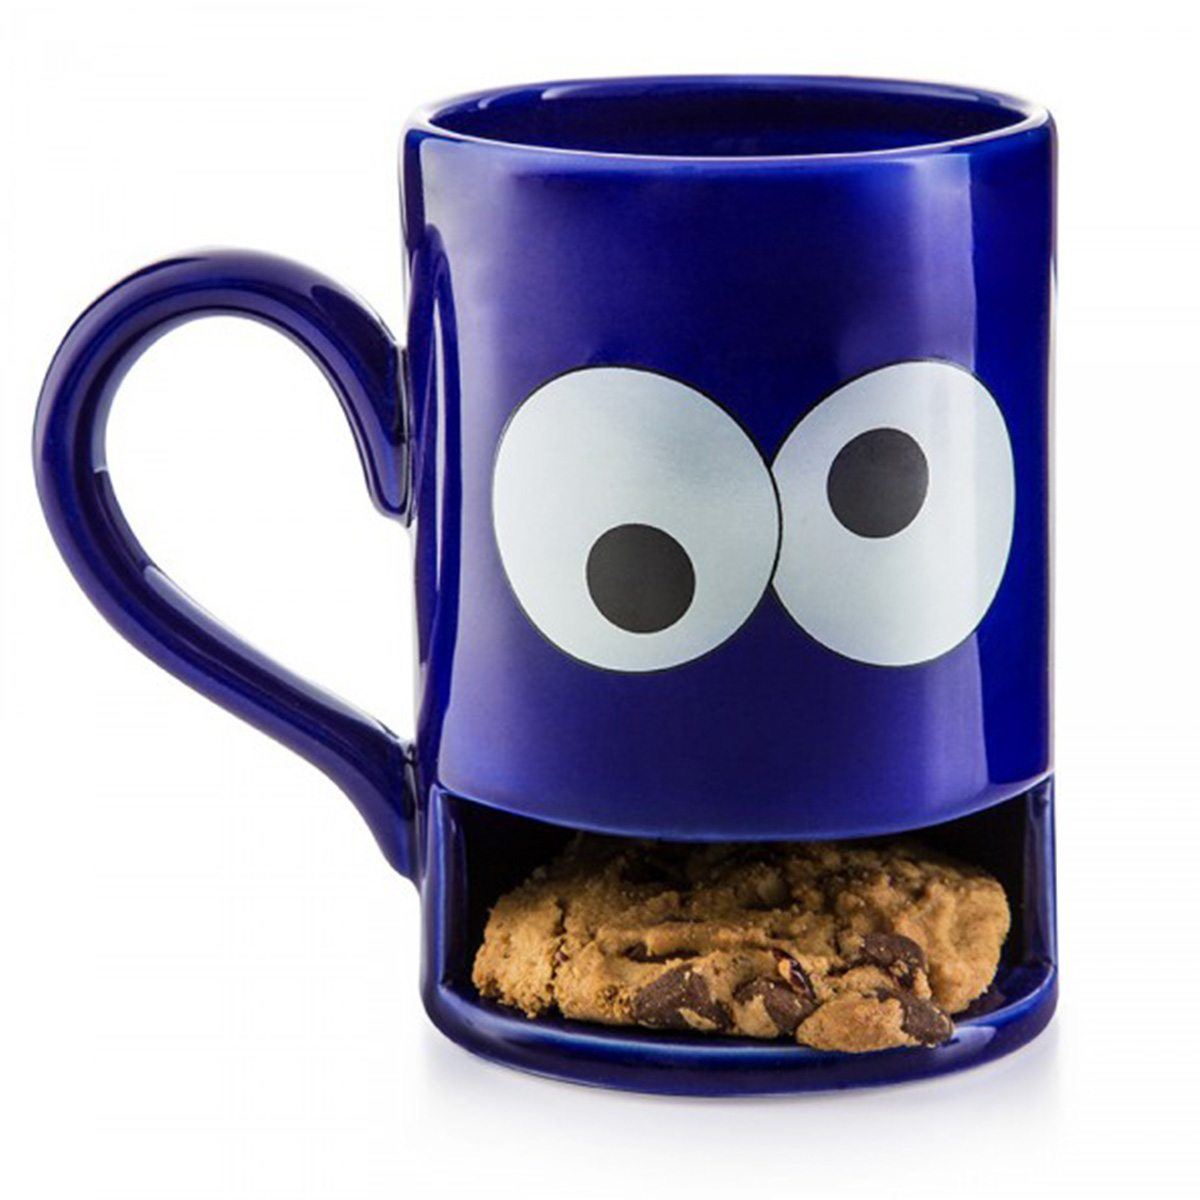 Coole Tassen Mug Monsters Tasse Mit Keksfach